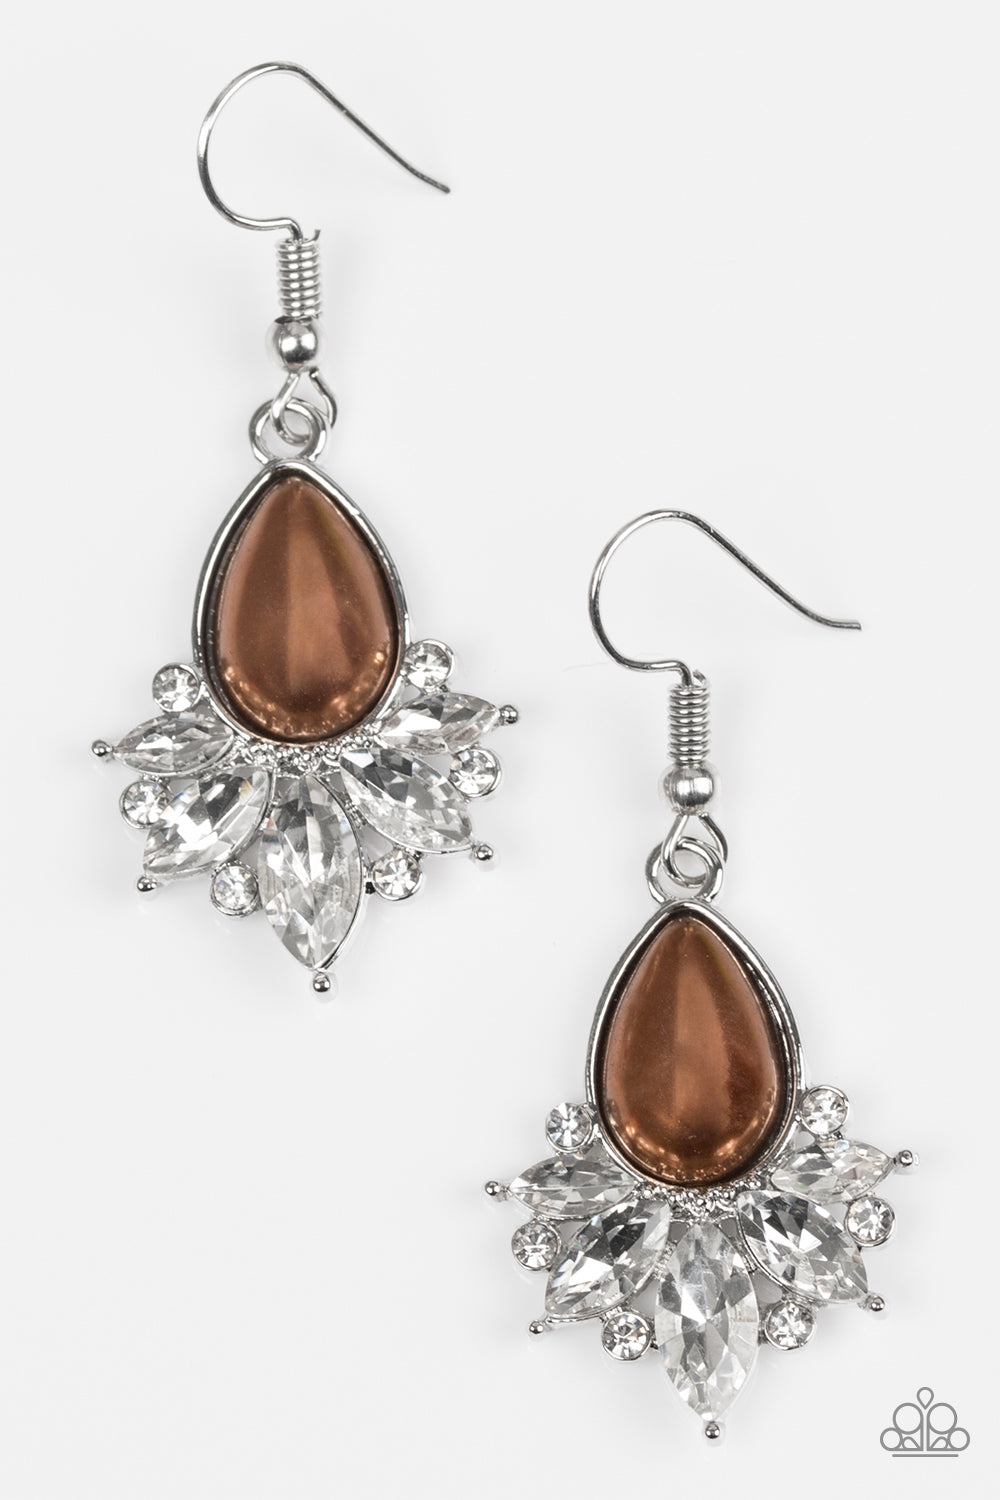 Paparazzi Accessories - Regal Reputation - Brown Earrings - JMJ Jewelry Collection